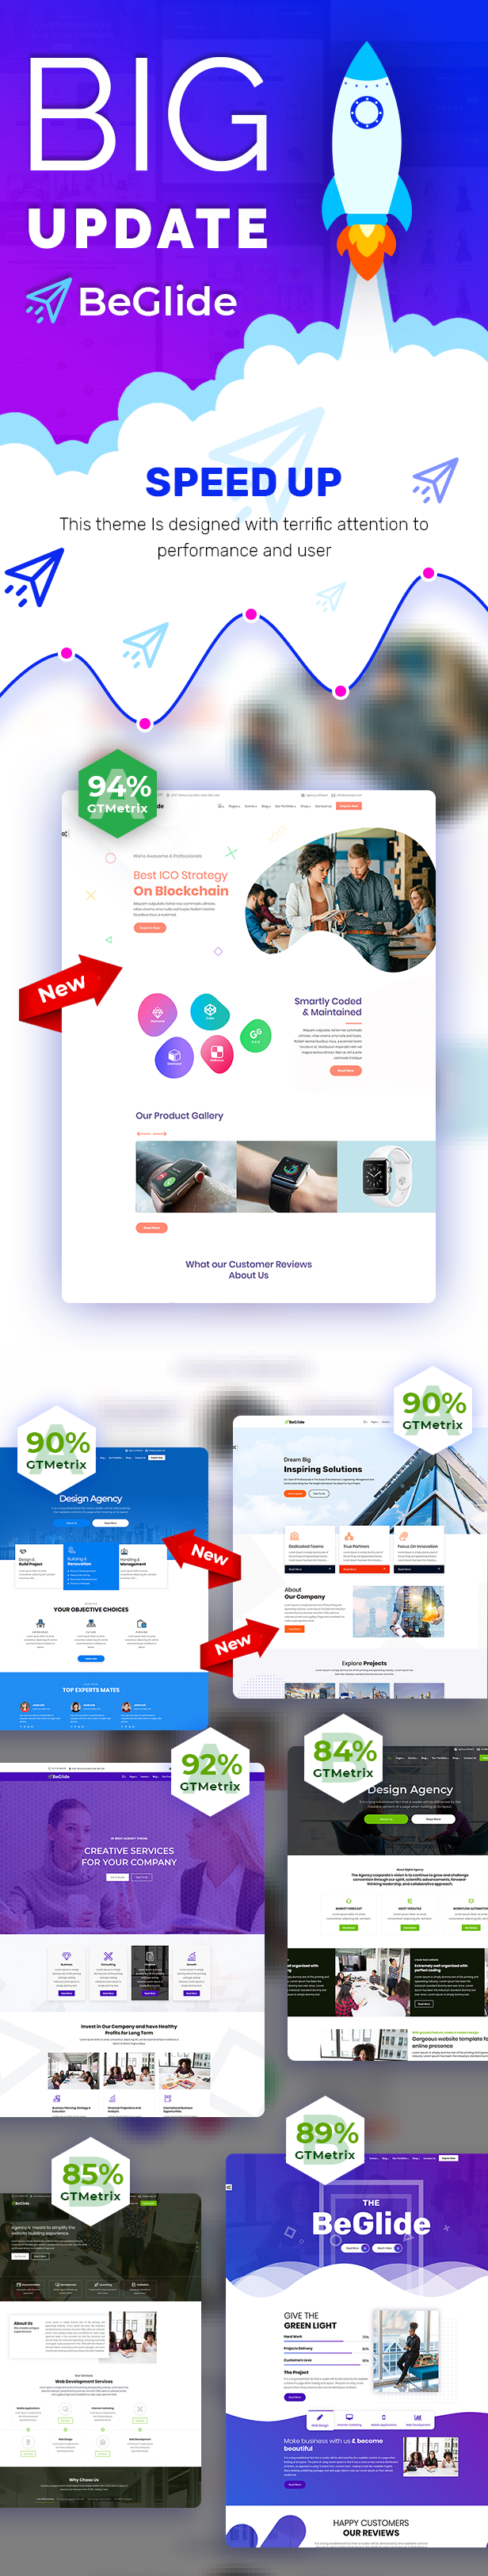 BeGlide: Corporate Business Consultant Agency WordPress Theme - 7